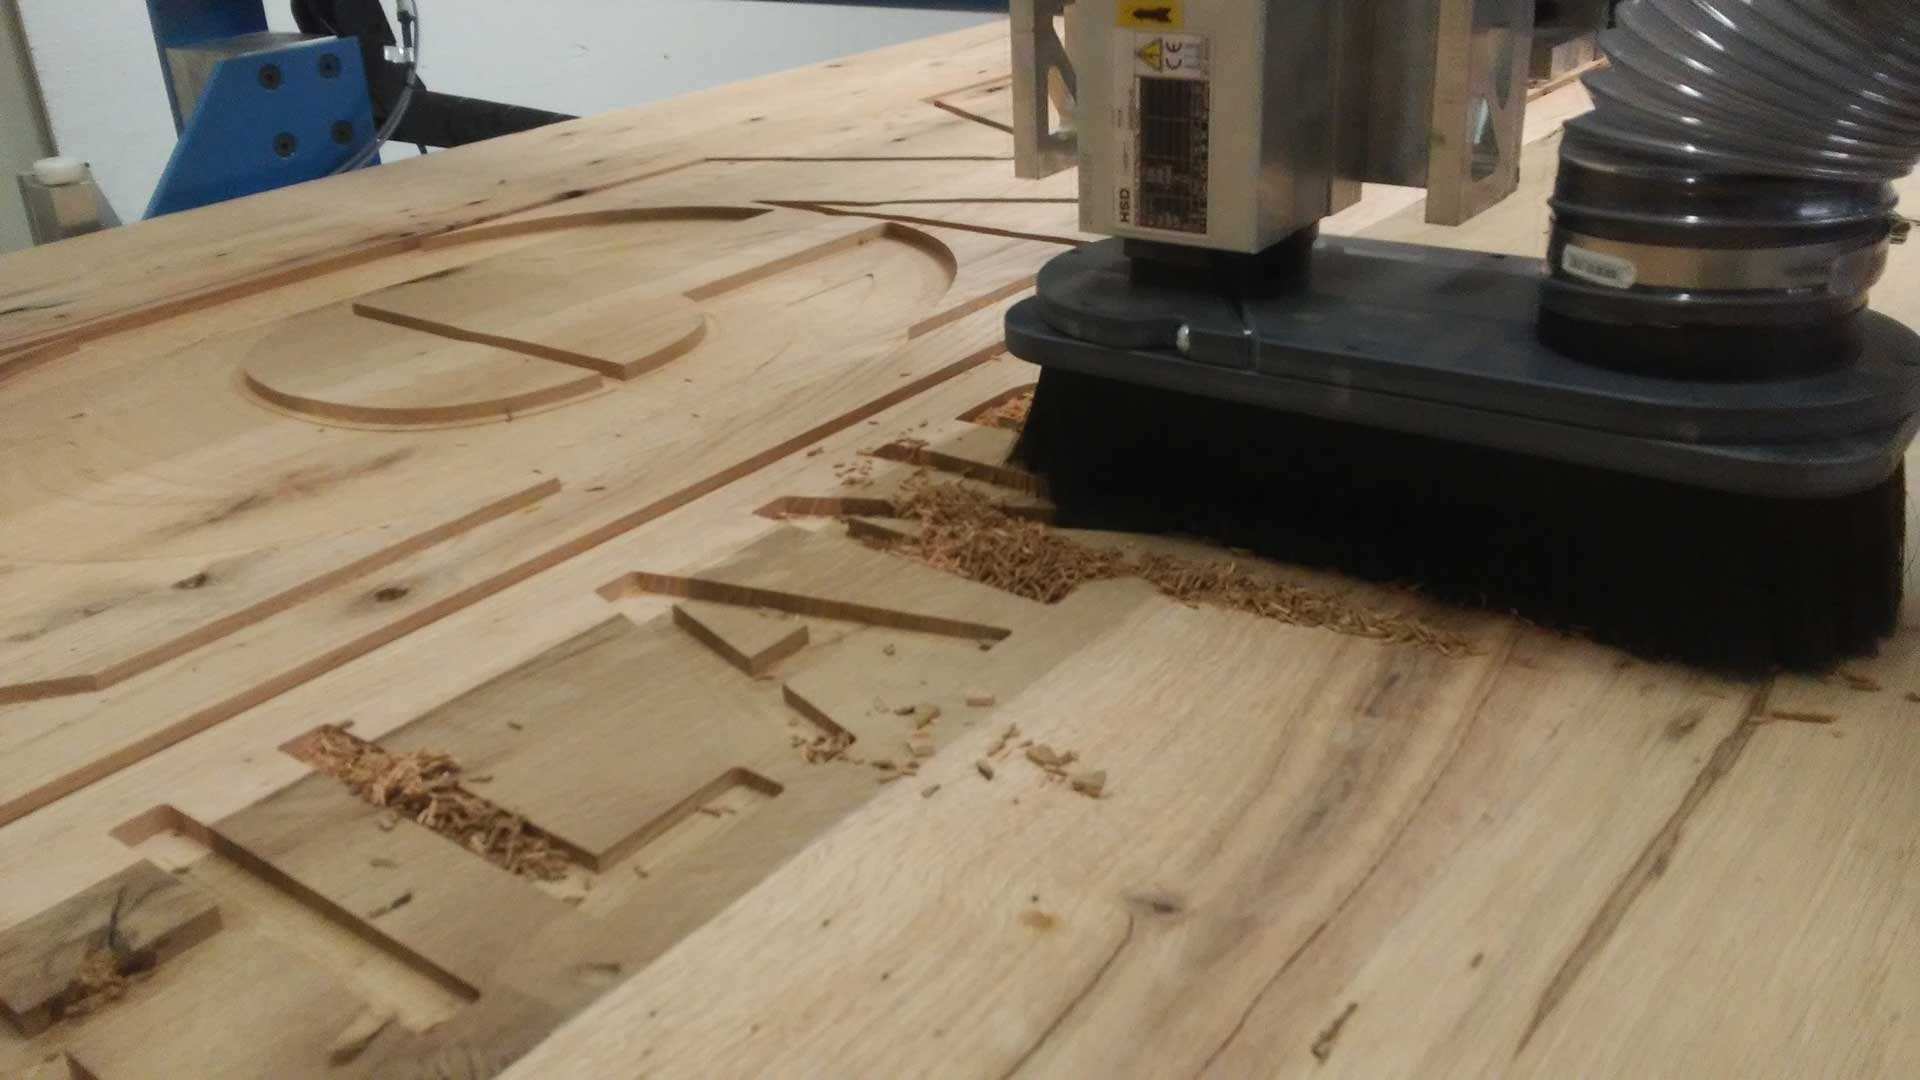 cnc-router-wood-sign